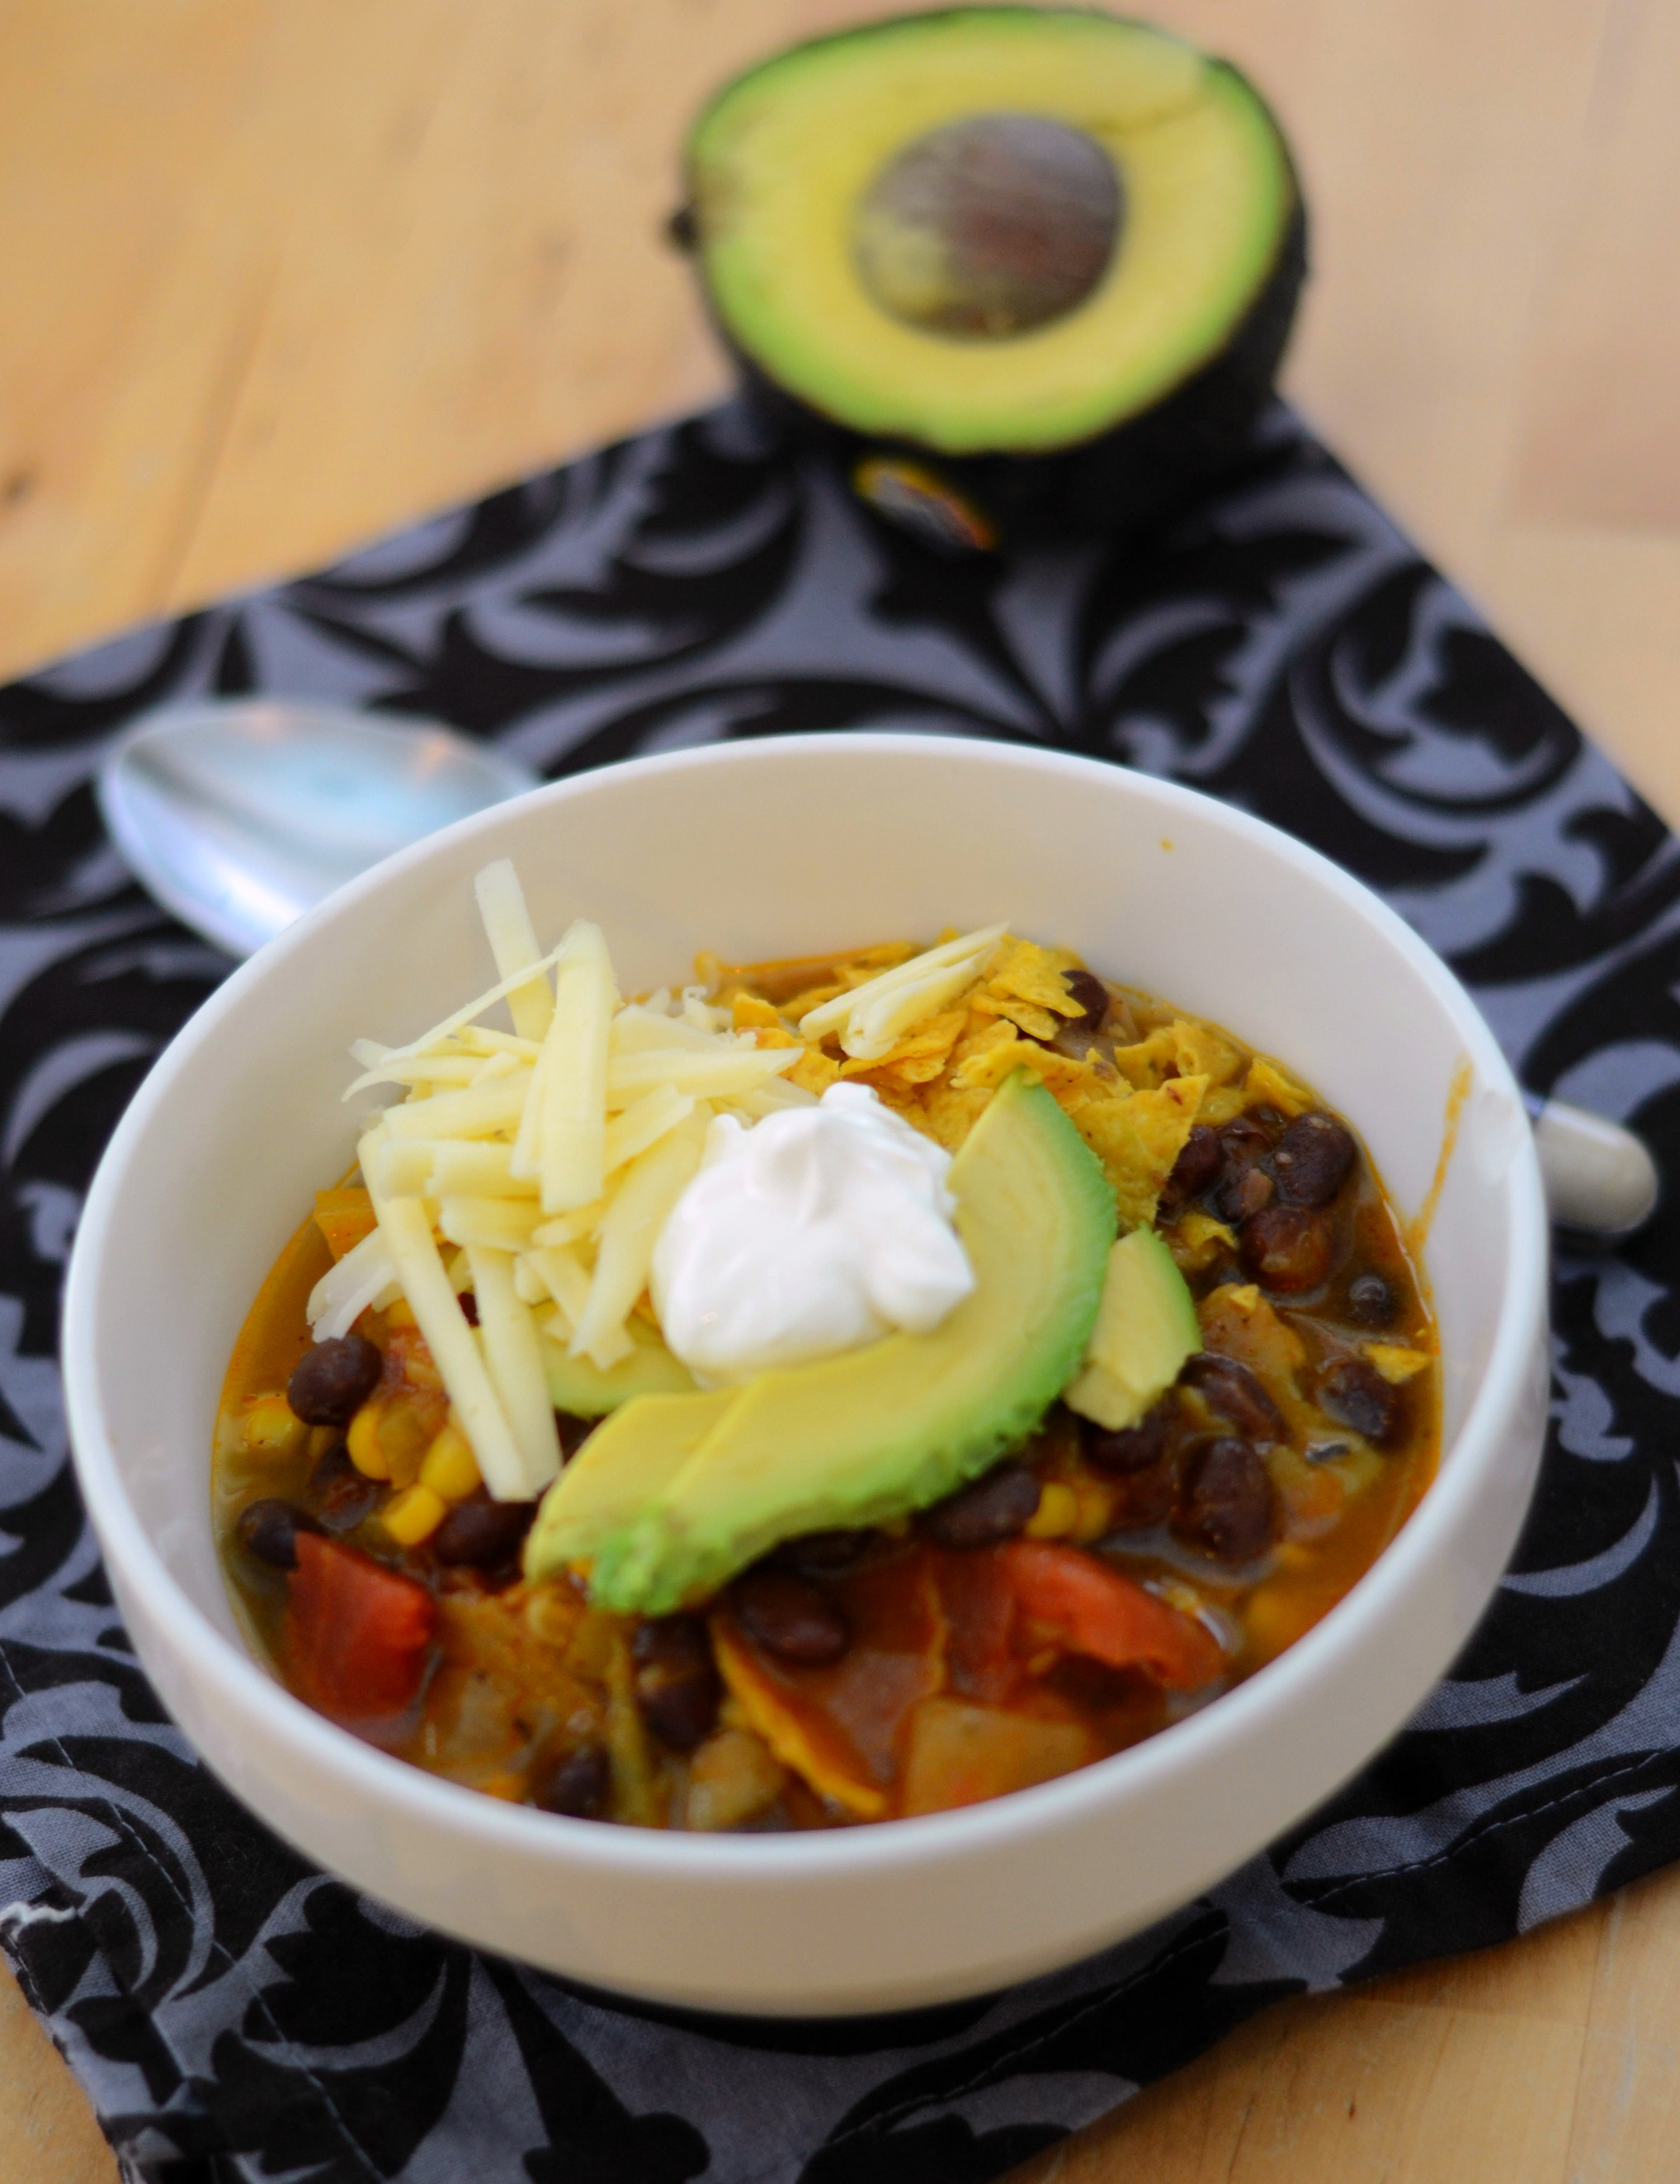 Bowl of Vegetarian Tortilla Soup topped with avocados, cheese and sour cream